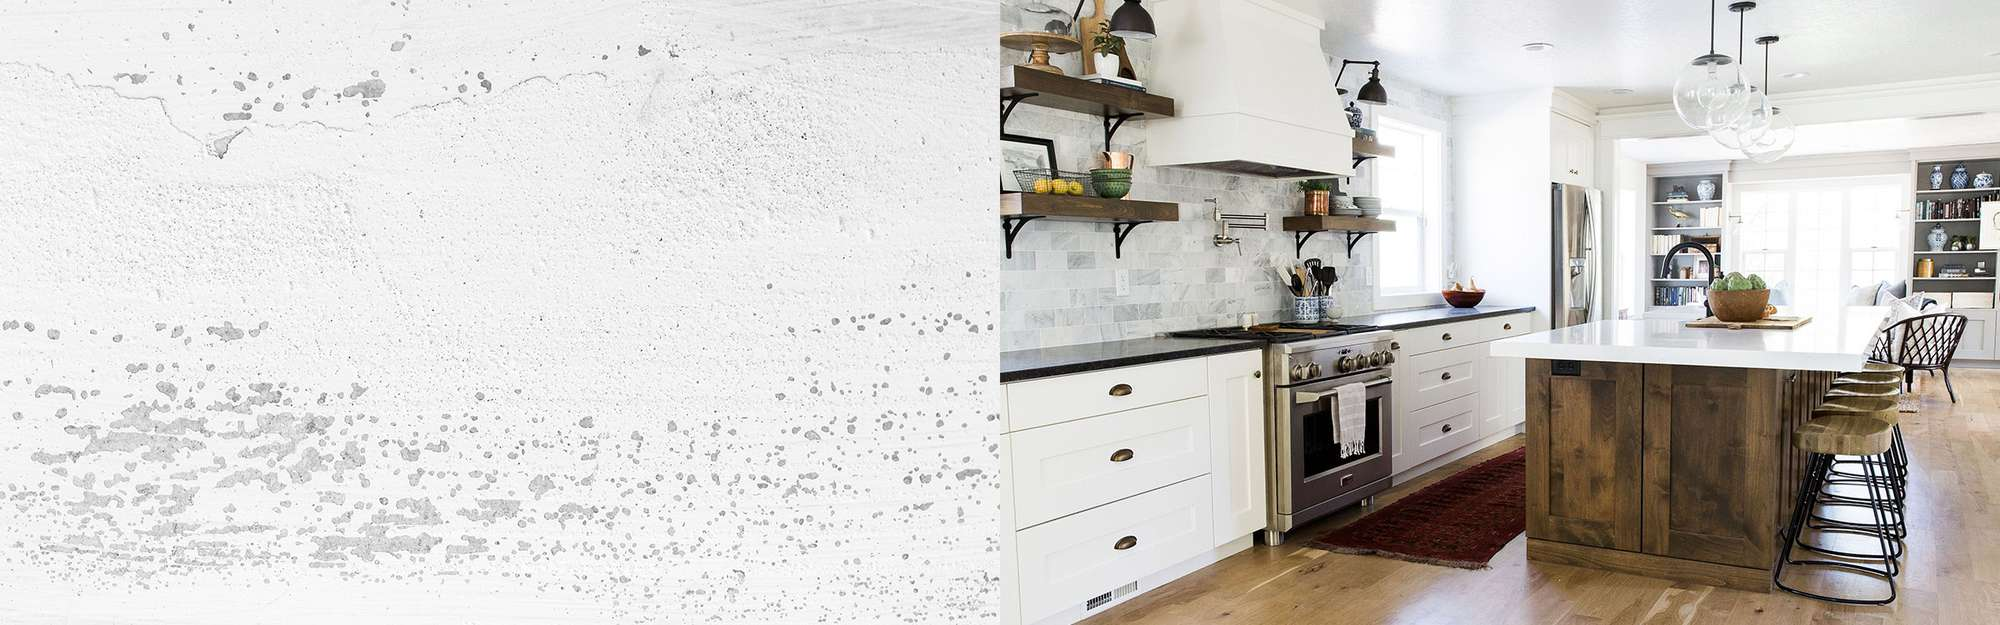 Rustic kitchen cabinets lead.